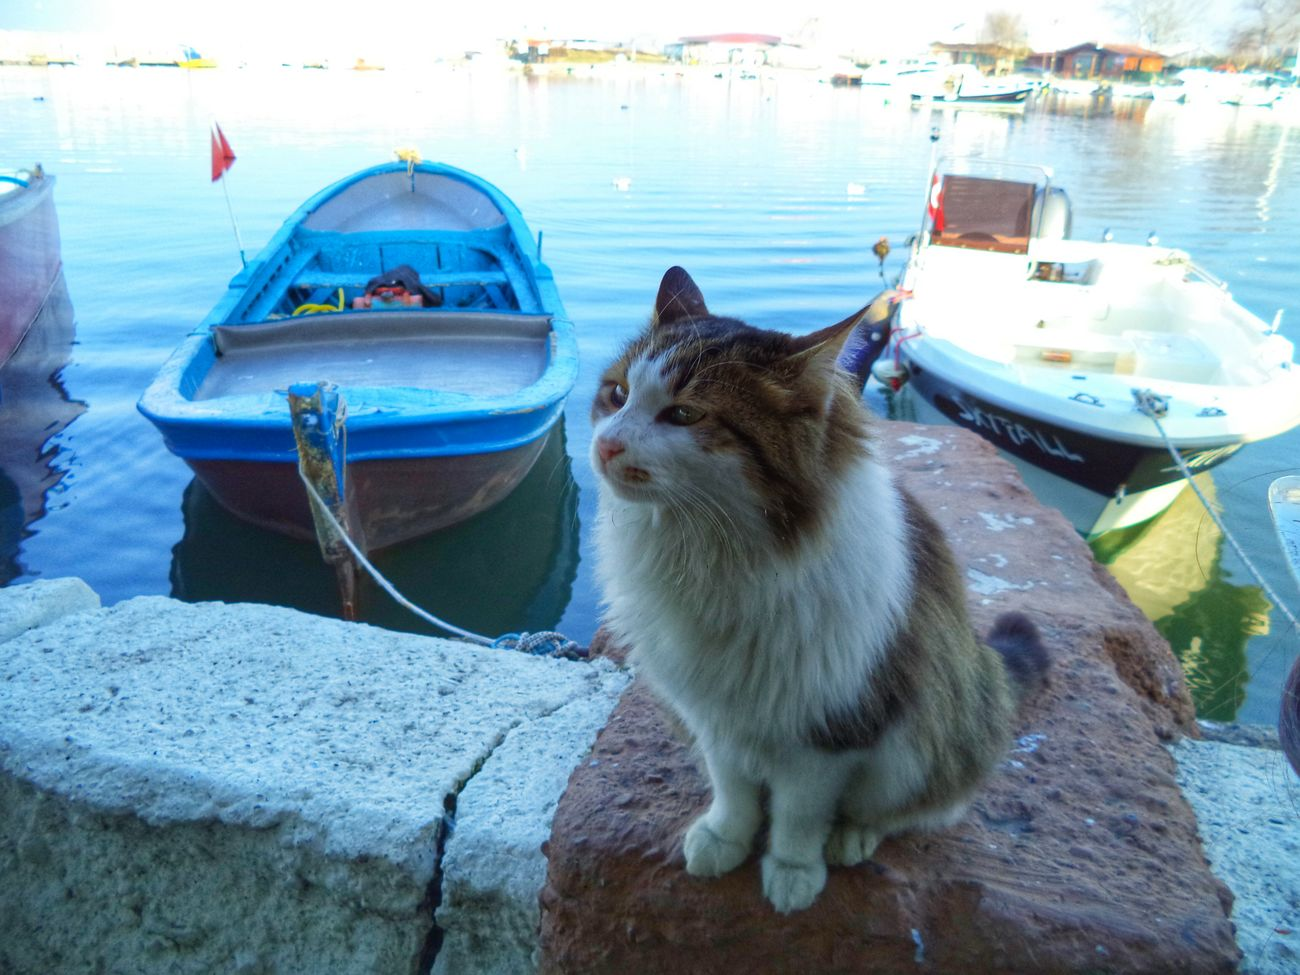 Taking Photos Cat Lovers Cat Streetphotography Hello World Relaxing Benimgözümden Kadrajturkiye Fotografheryerde Animal Photography Sea And Sky Benimgözünden Bursa / Turkey Istanbuldayasam